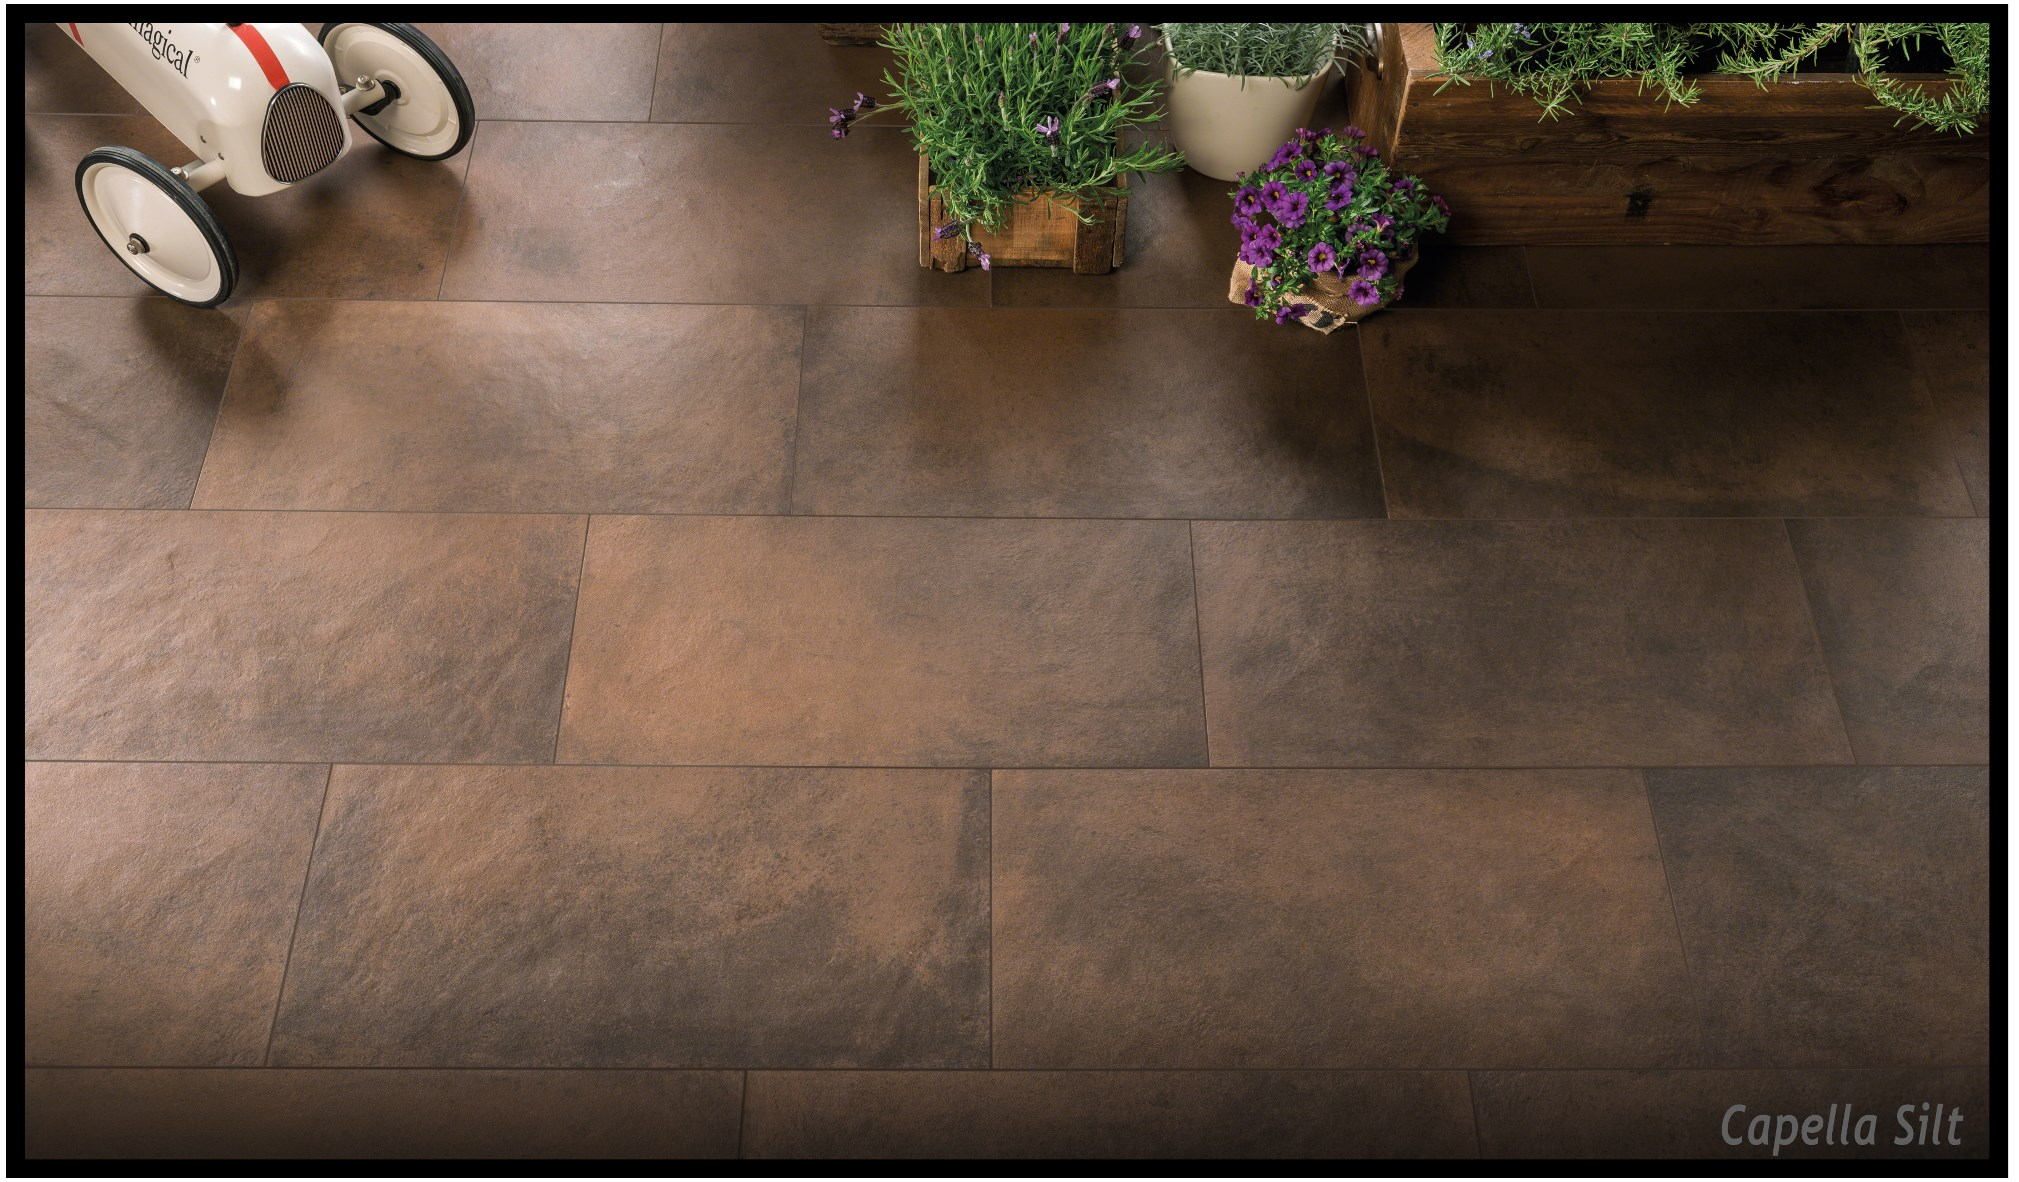 Improving upon perfection capella porcelain tiles builders and homeowners are choosing porcelain tile options for flooring backsplashes countertops and other applications for good reason its extremely dailygadgetfo Images